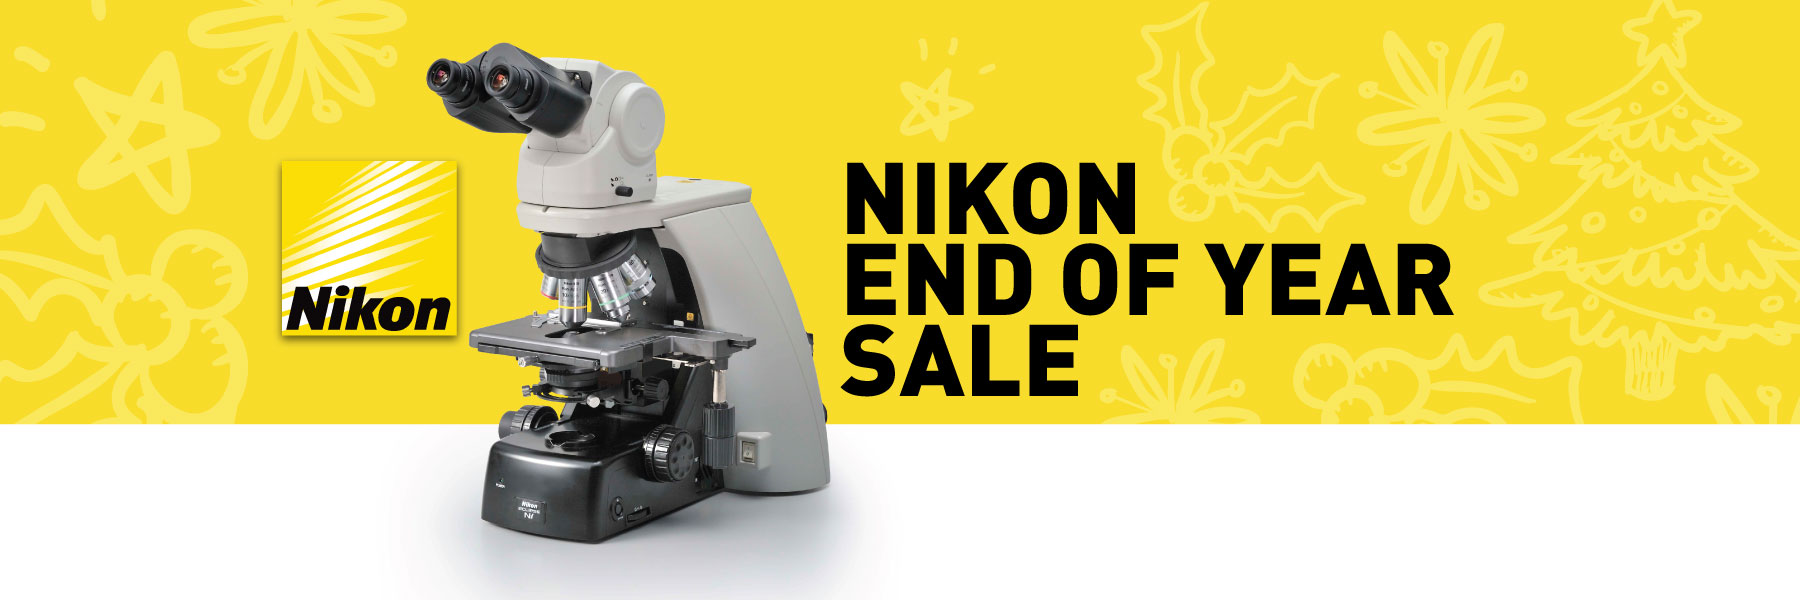 Nikon End of Year Sale